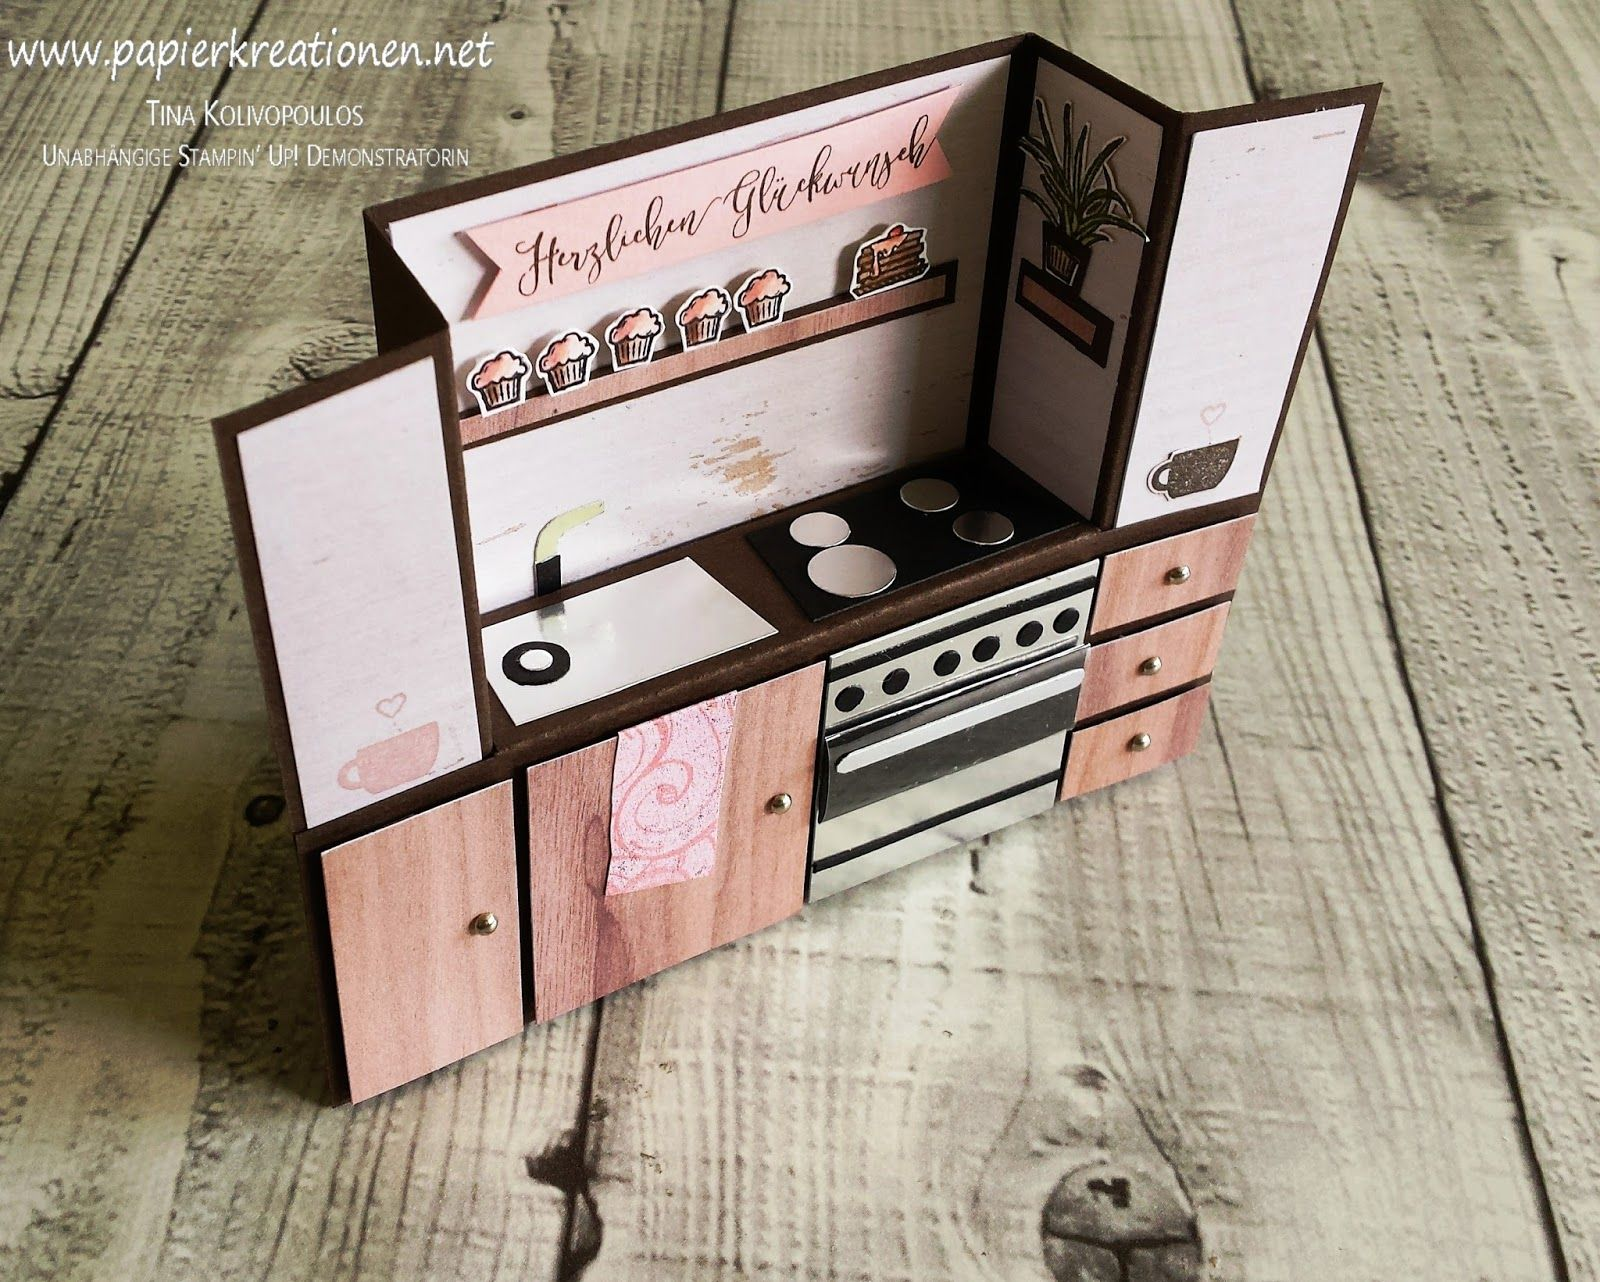 Bench Fold Card Little Kitchen With Mini Cupcakes Stampin Up Cards Handmade Folded Cards Bench Card